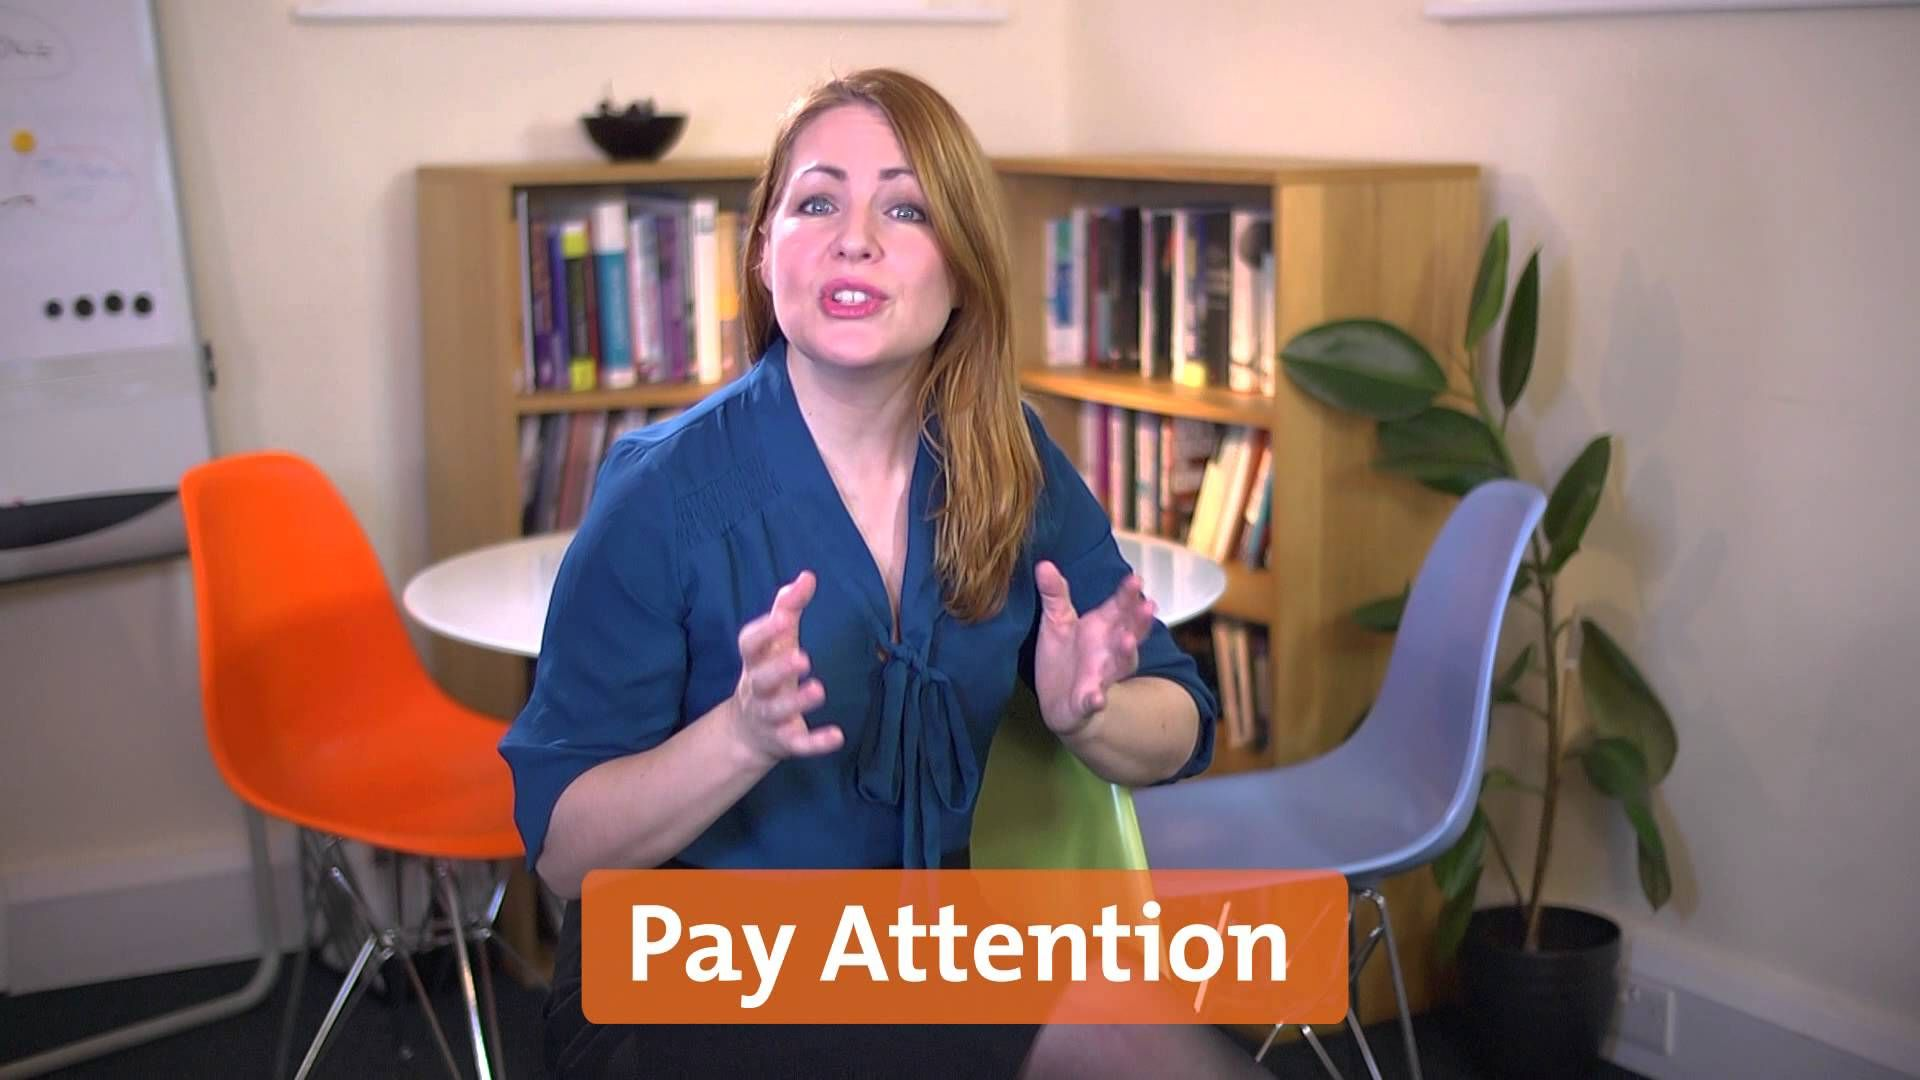 Improve Your Listening Skills With Active Listening